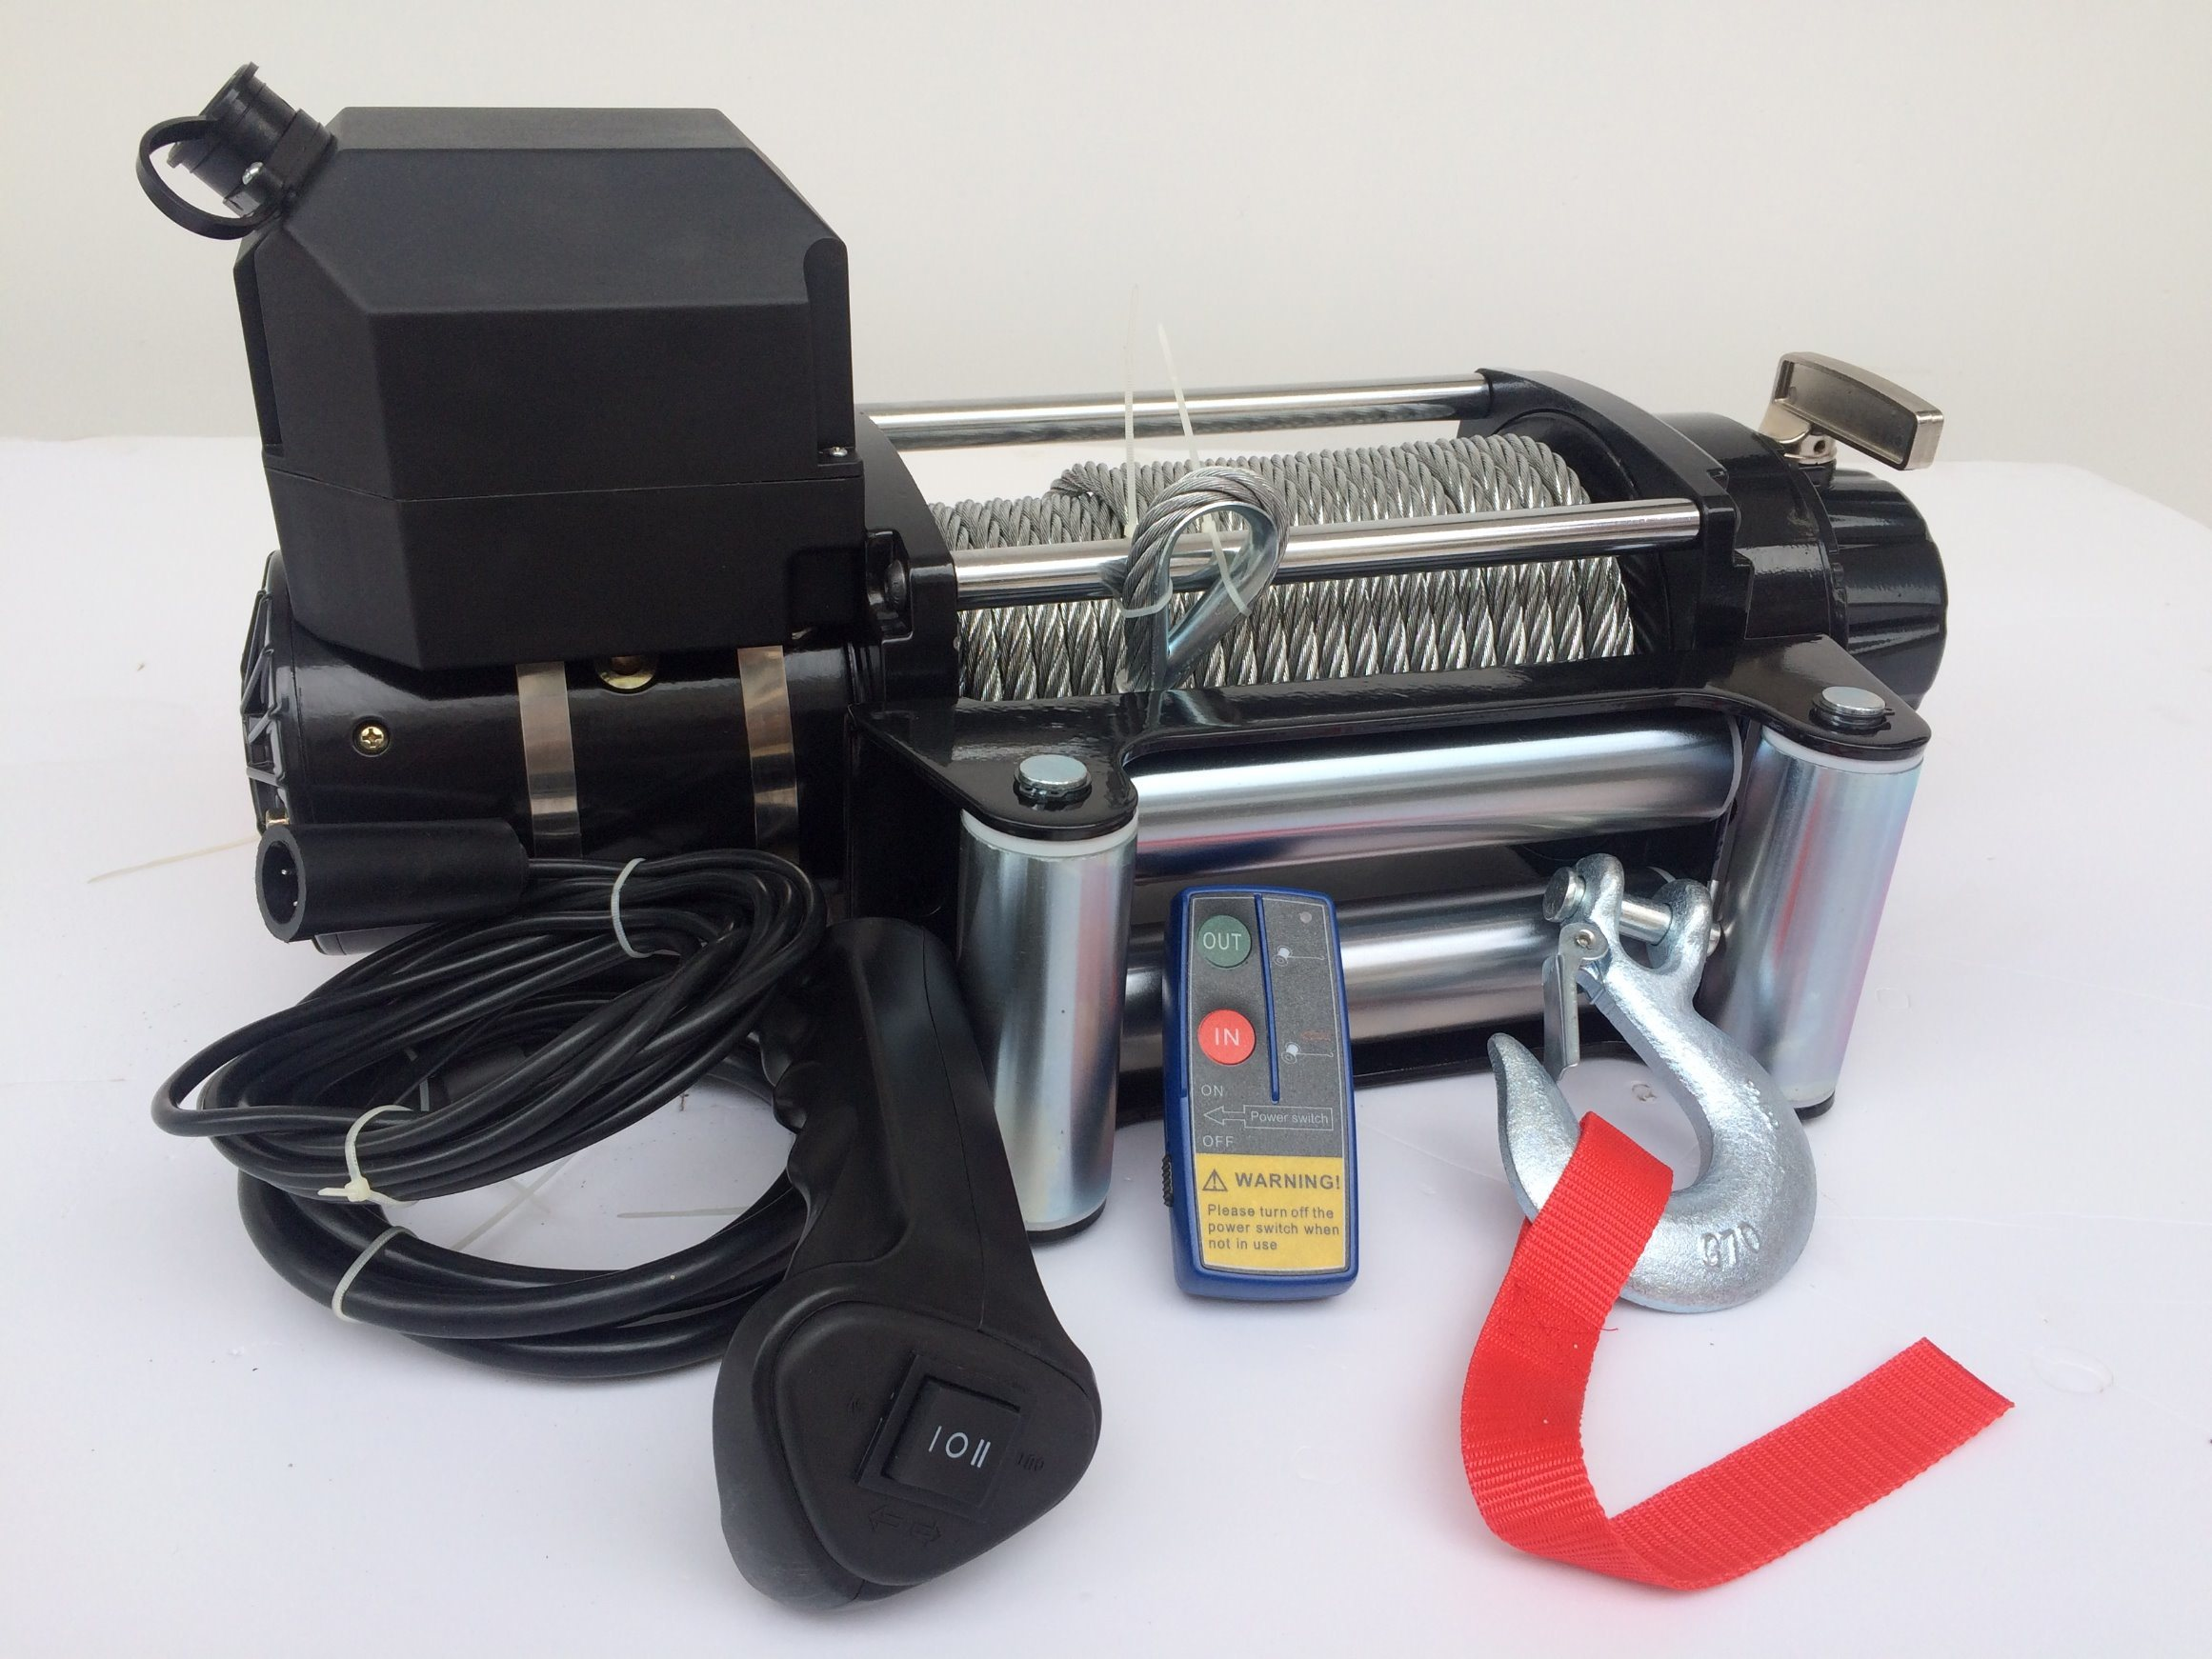 Electric Winch 9500 Lb Ideal Recovery Winch to Entry Level off-Road